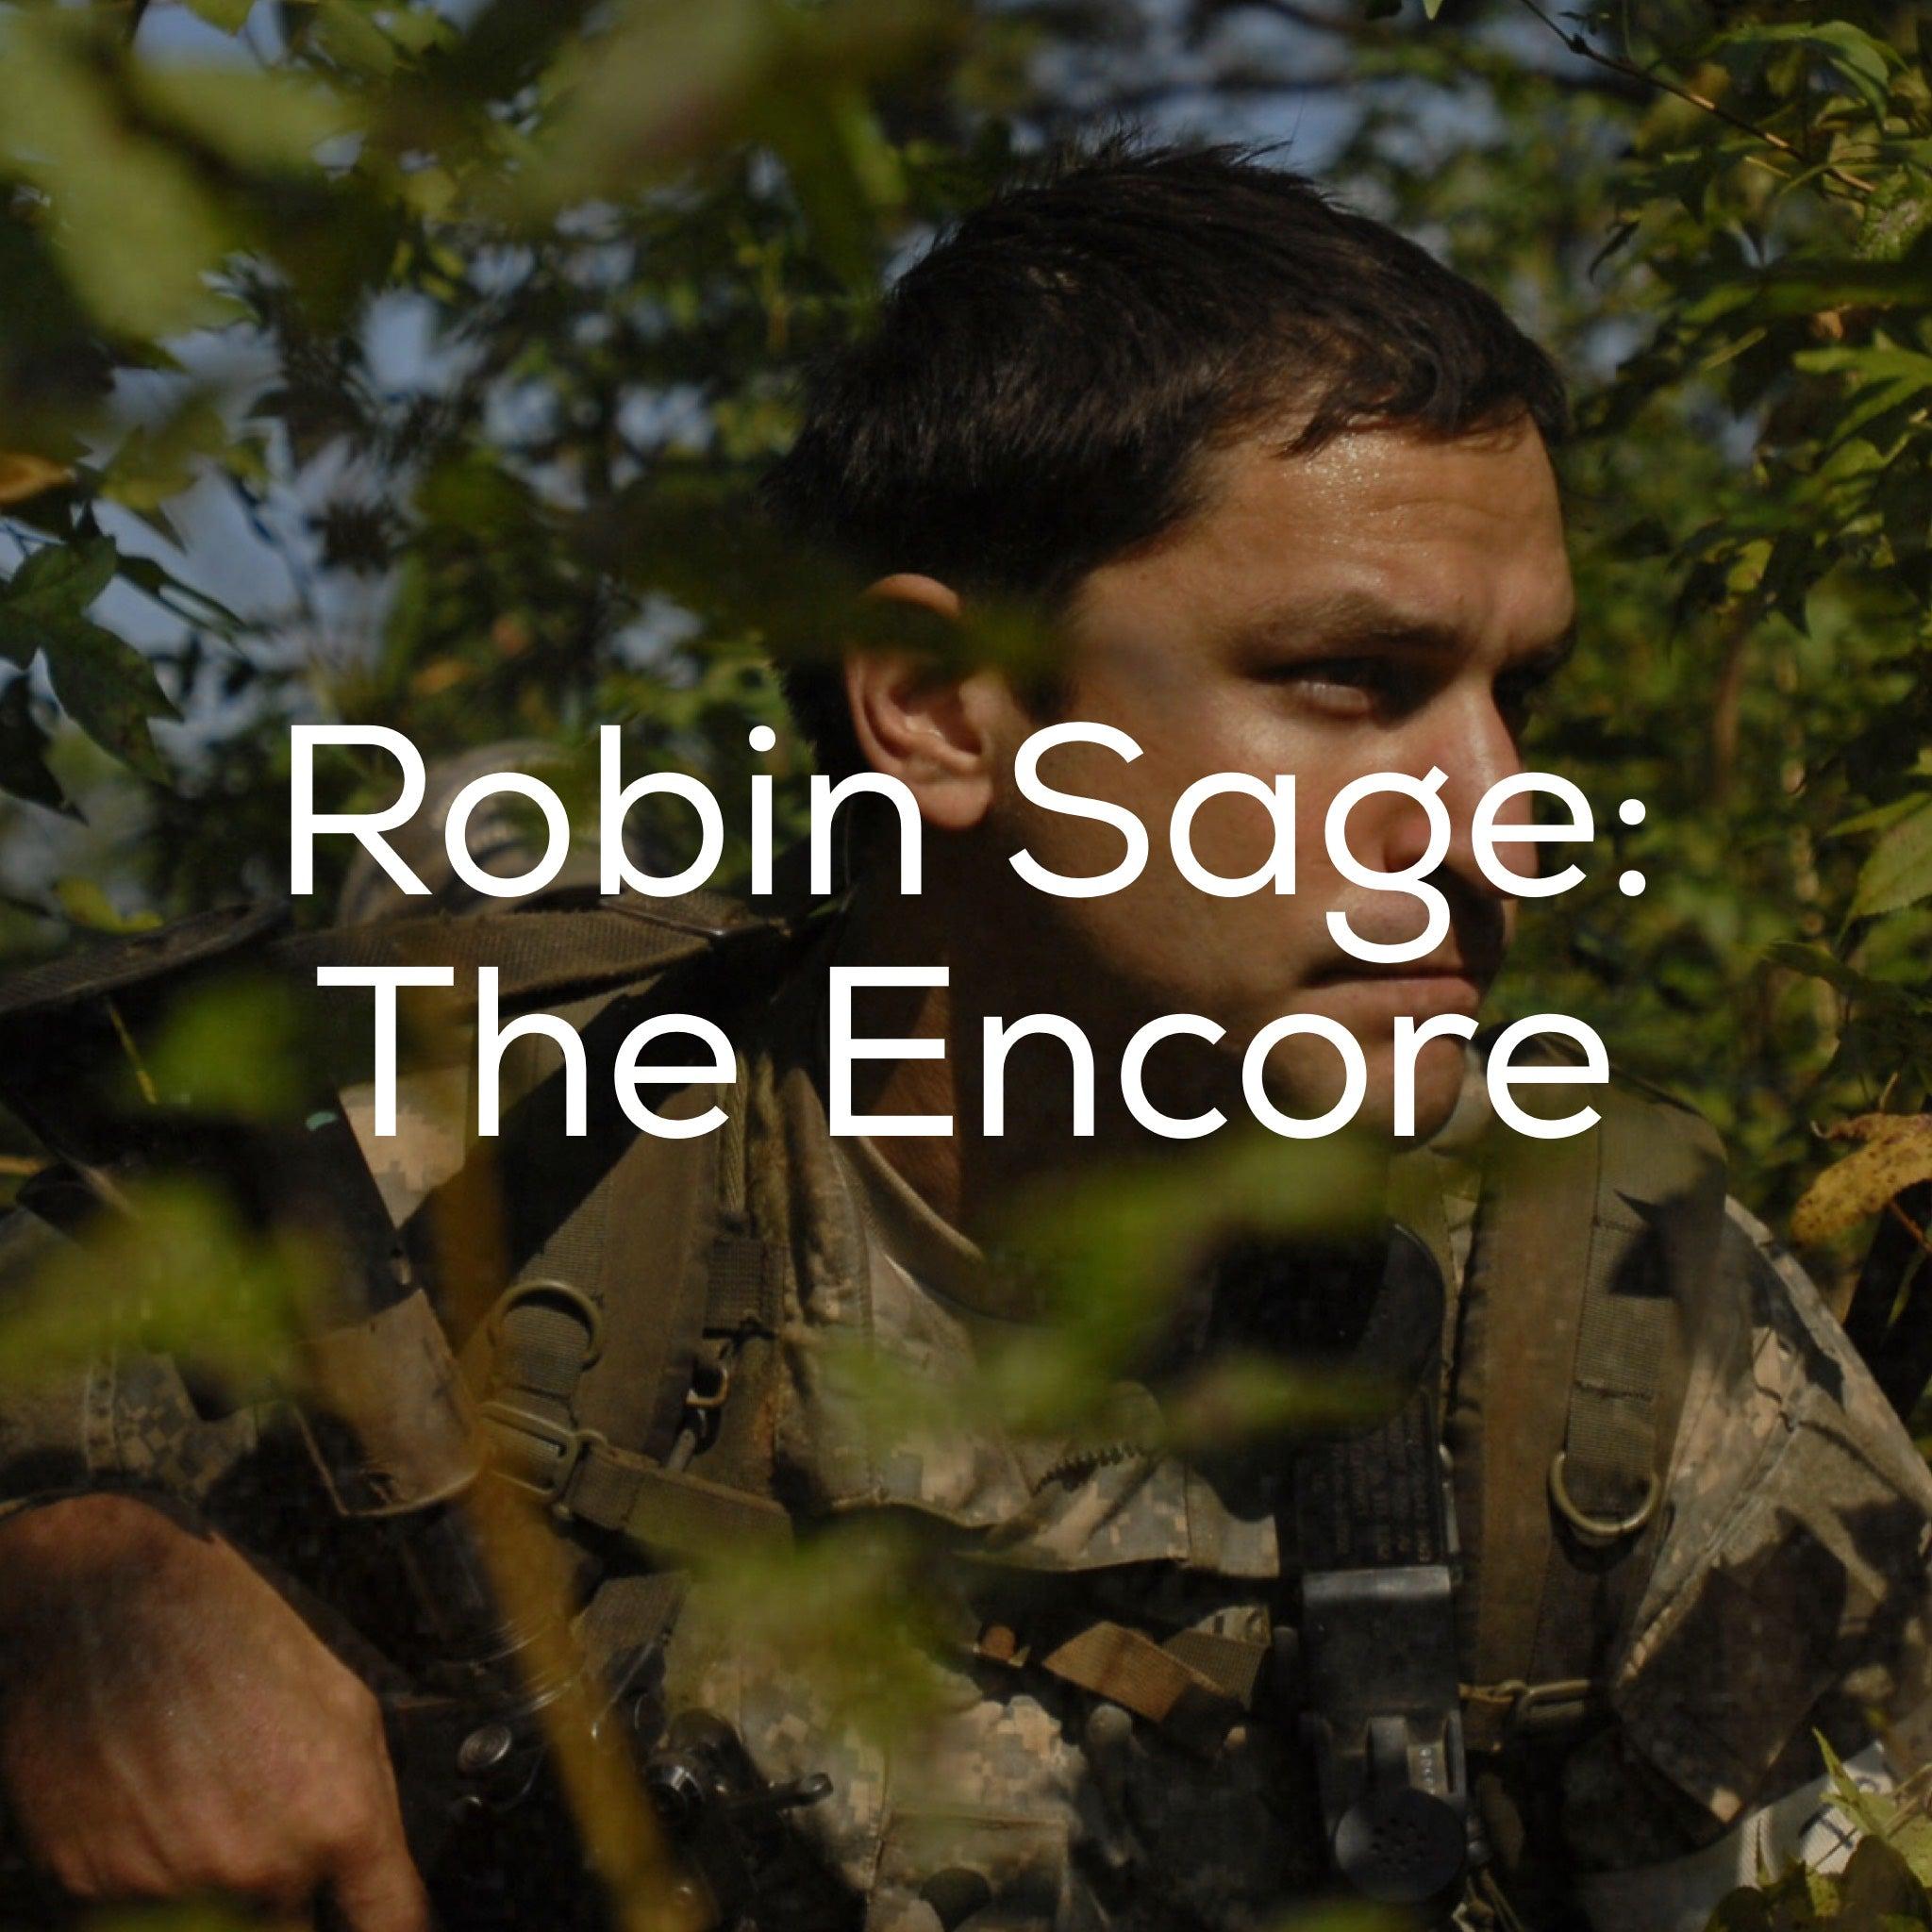 Robin Sage: The Encore